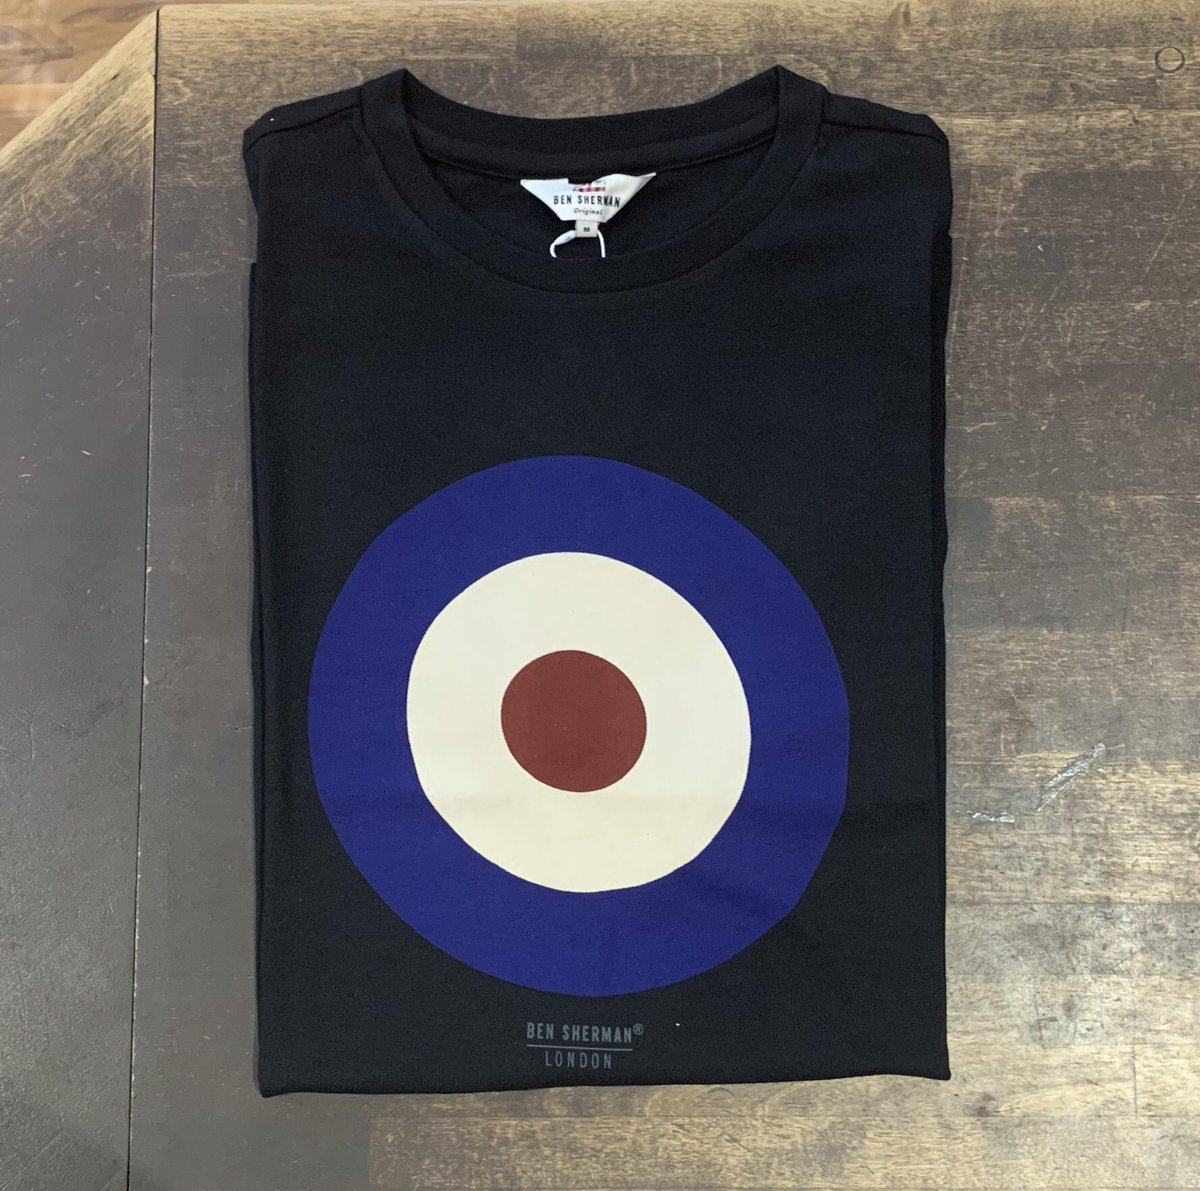 thetargettee thetargettee Twitter hashtag Twitter hashtag on hashtag thetargettee Twitter thetargettee on hashtag on EDIWHY9e2